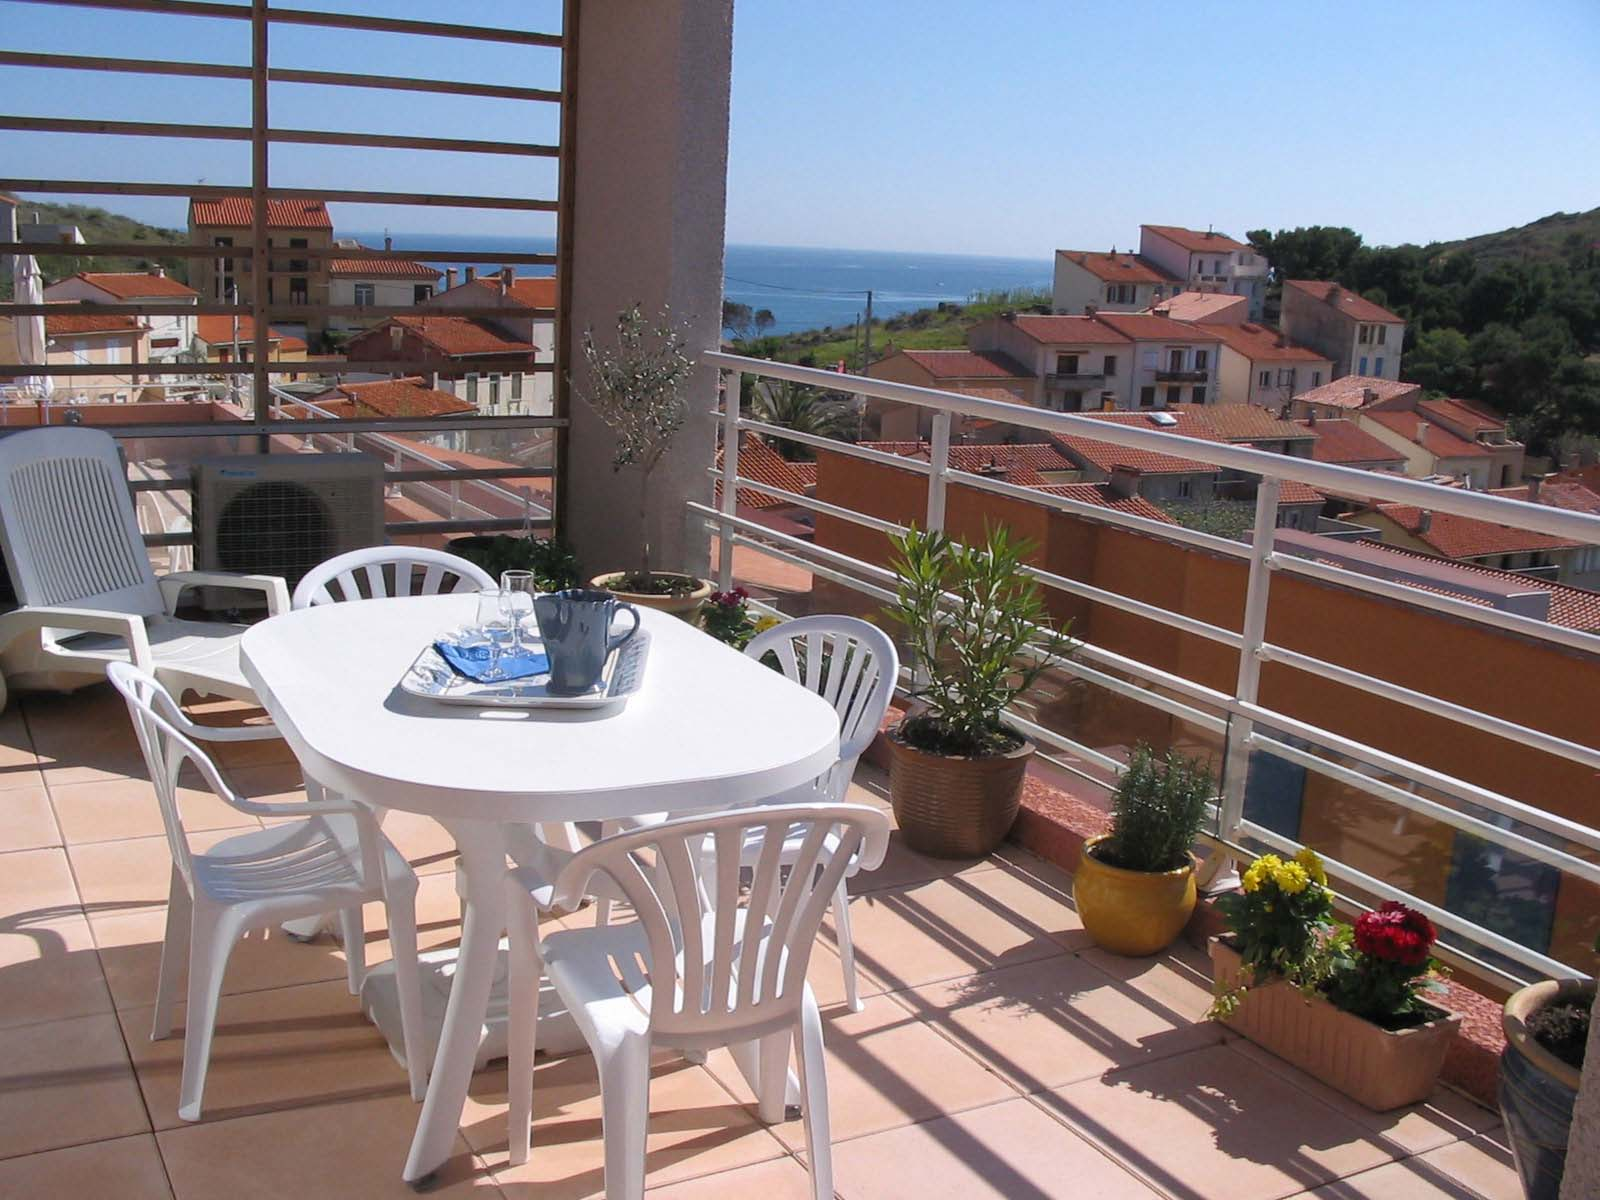 Apartment Balcony Design: Ideas about Small Balcony Design on ...